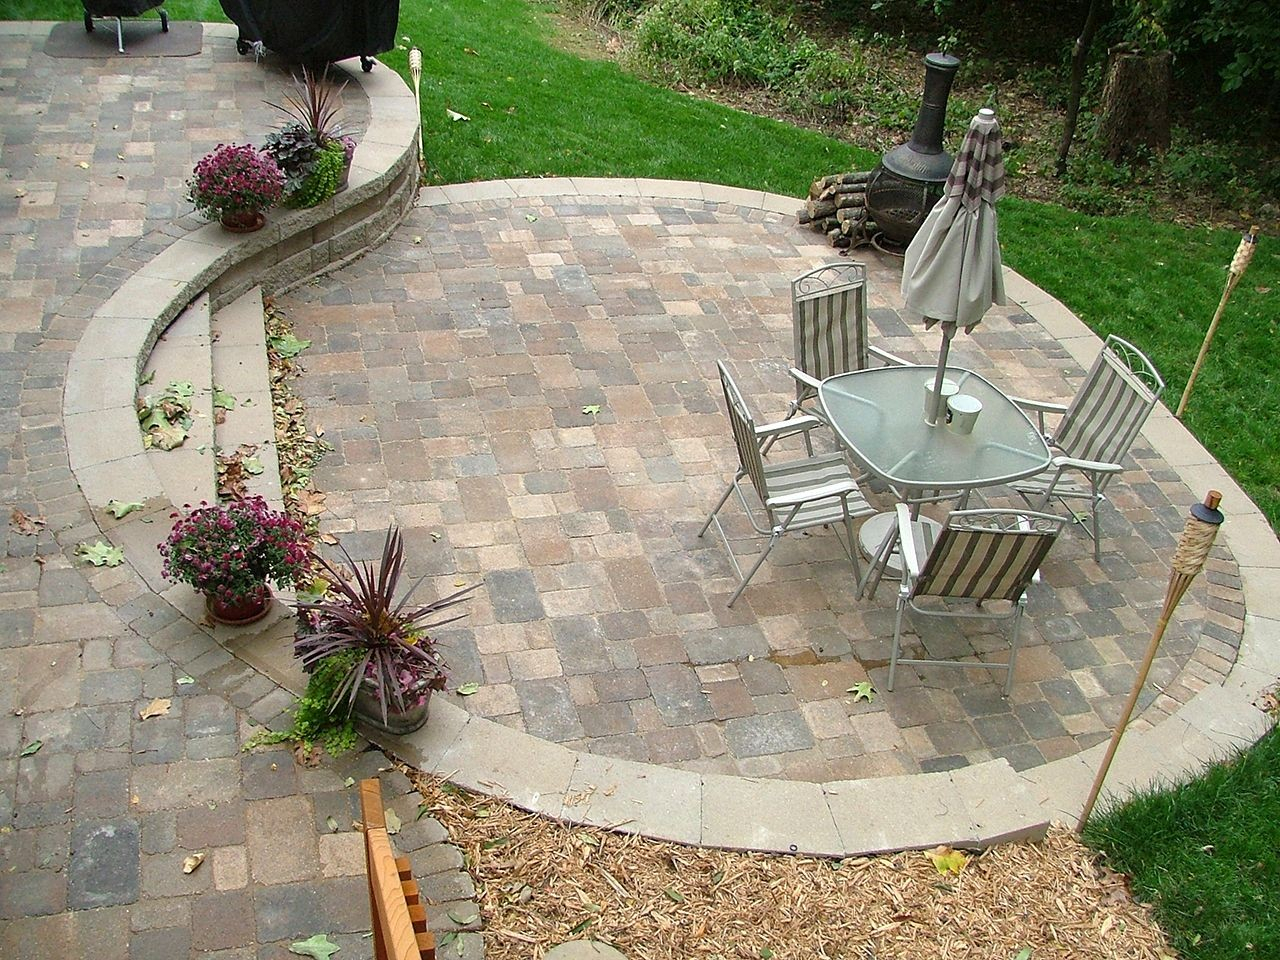 Lowes Backyard Ideas Patio Escob Co Zapatalab Info regarding Lowes Backyard Ideas